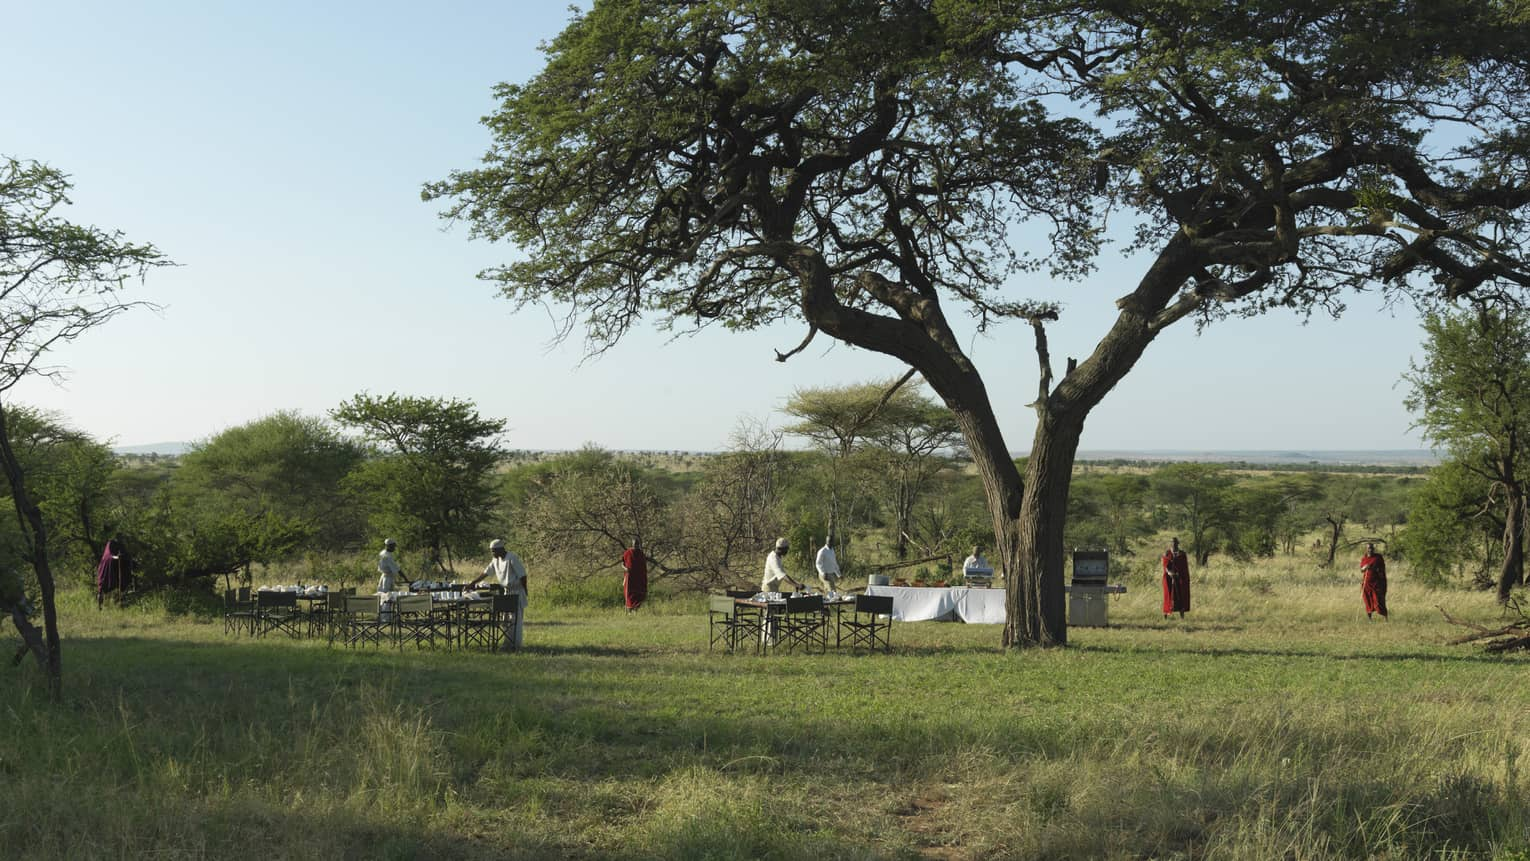 Staff set outdoor table and chairs as Maasai stand nearby at the outdoor meeting pit